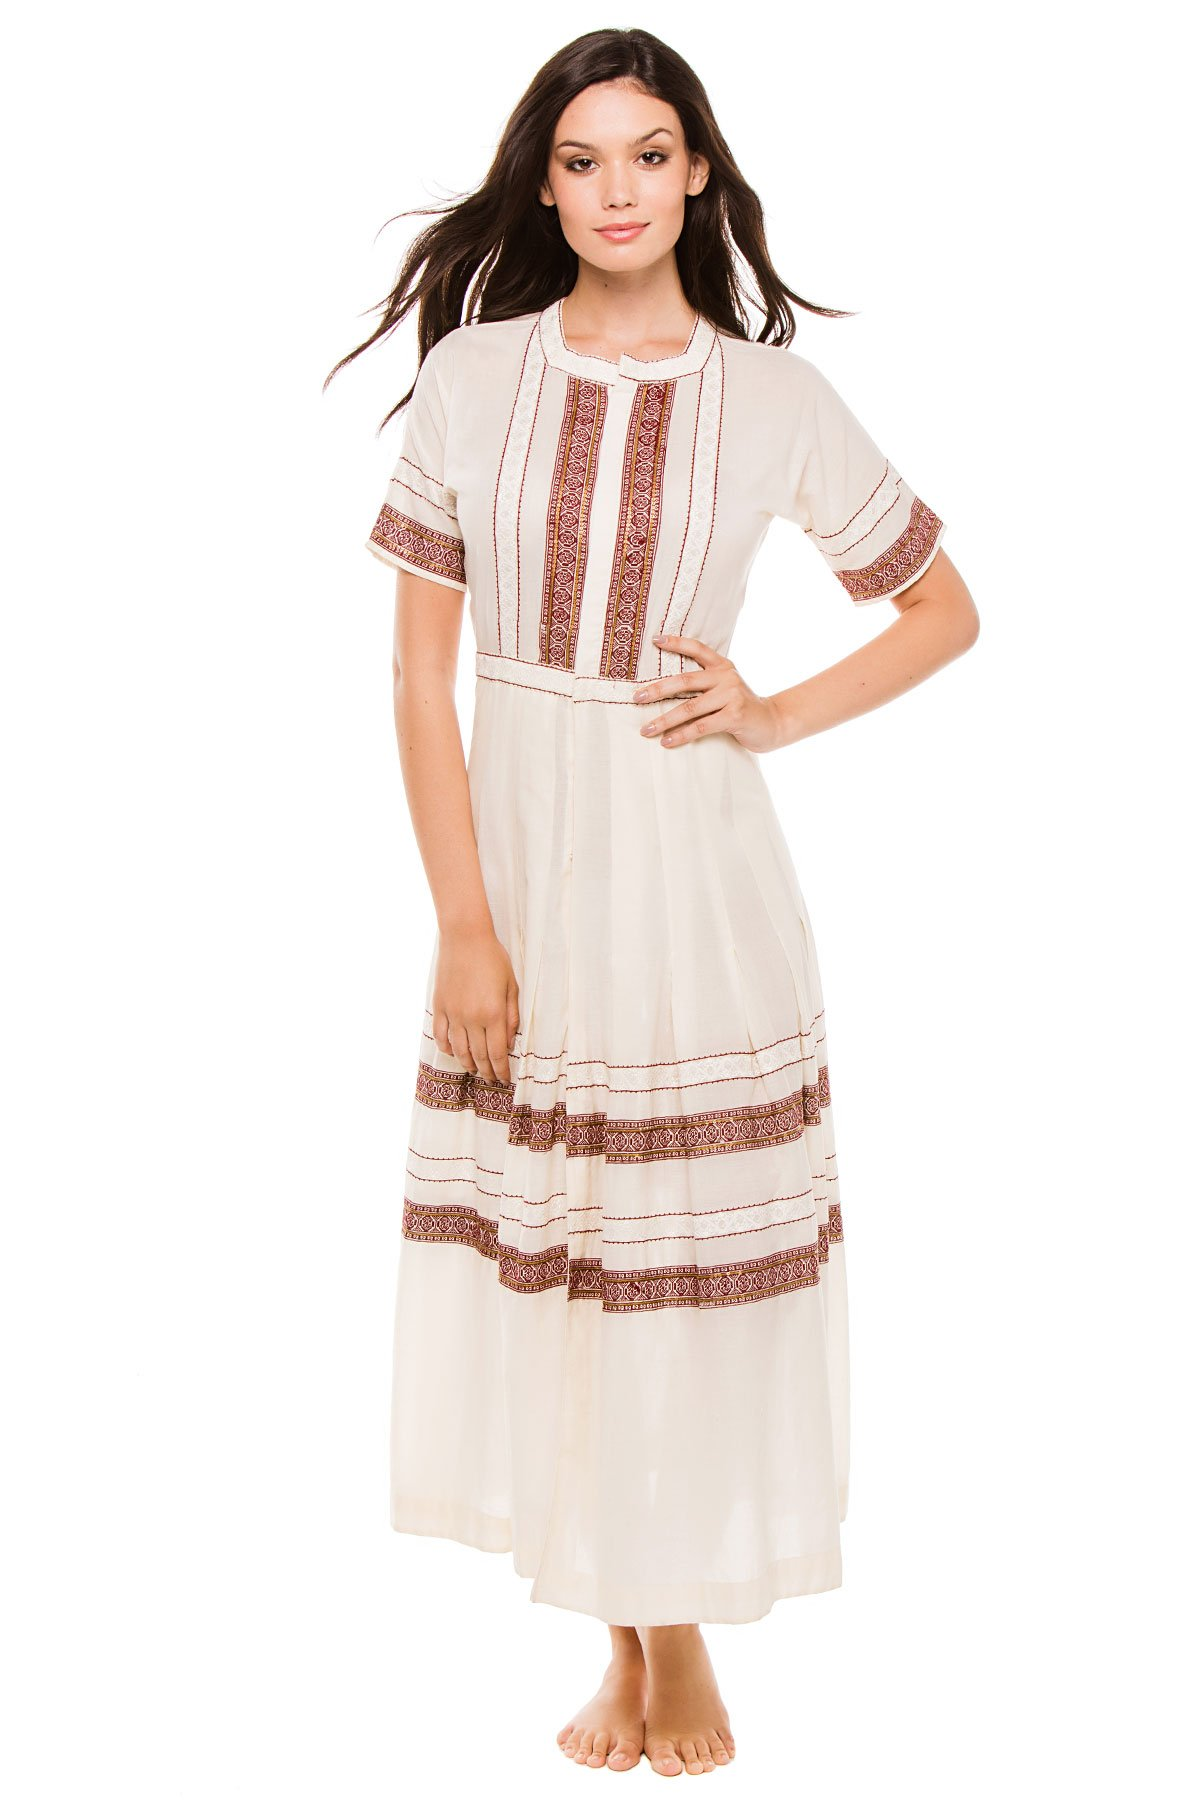 LoveShackFancy Women's Maxi Dress Swim Cover Up Antique White 1